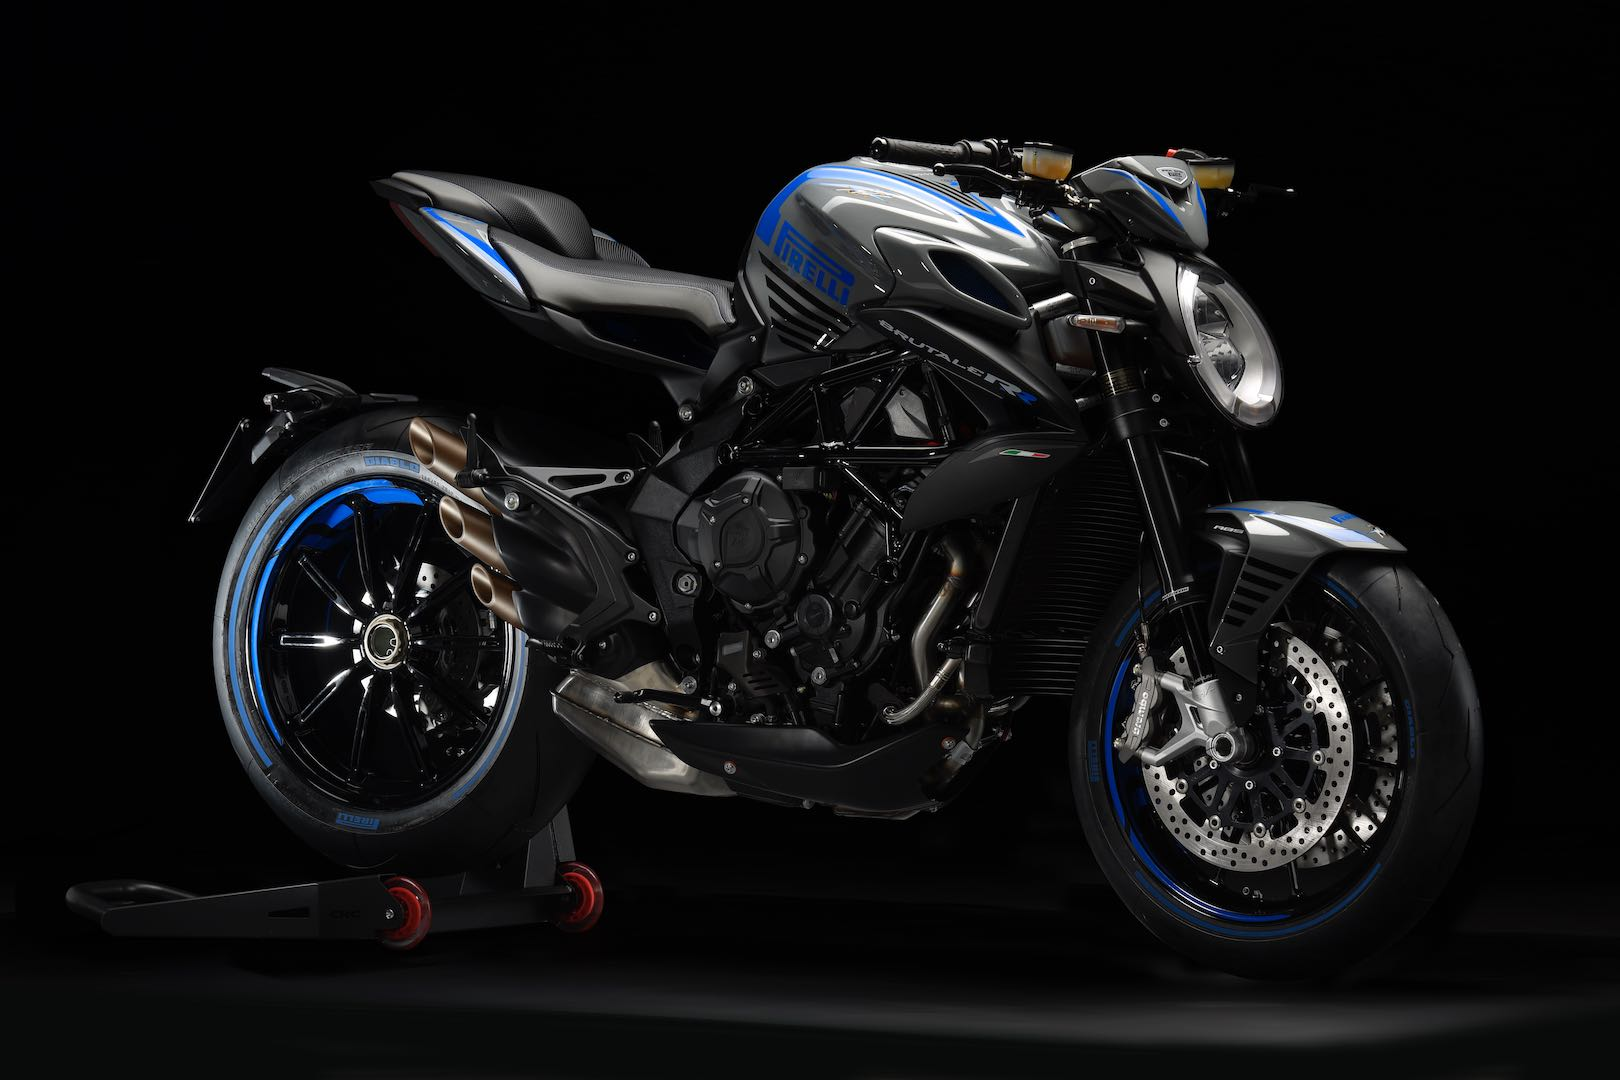 MV Agusta Brutale 800 RR Pirelli blue color